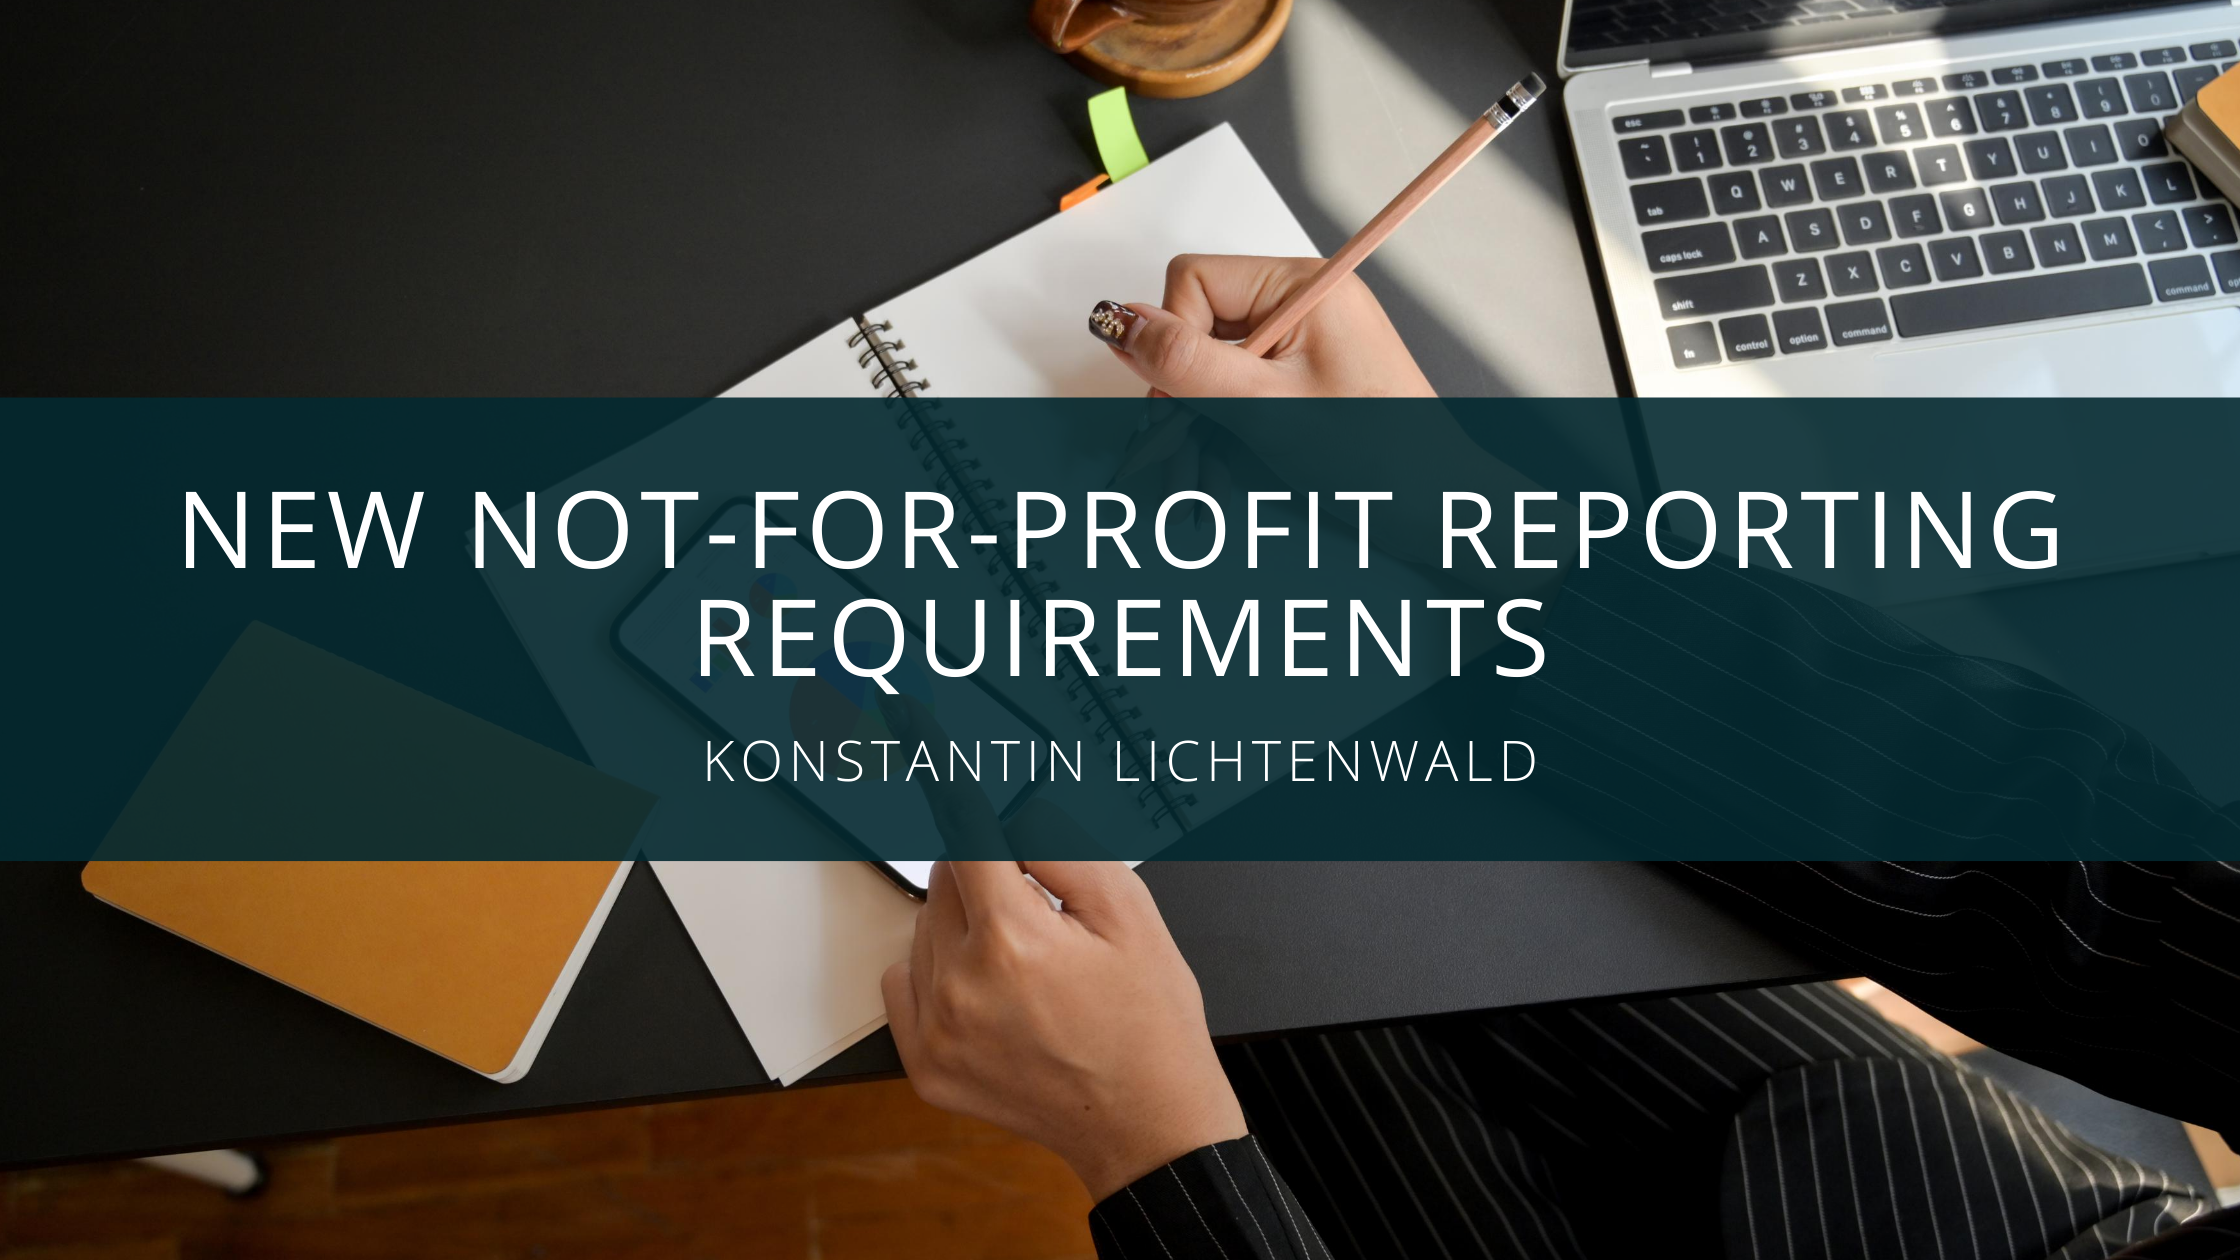 Konstantin Lichtenwald Assesses New Not-for-Profit Reporting Requirements